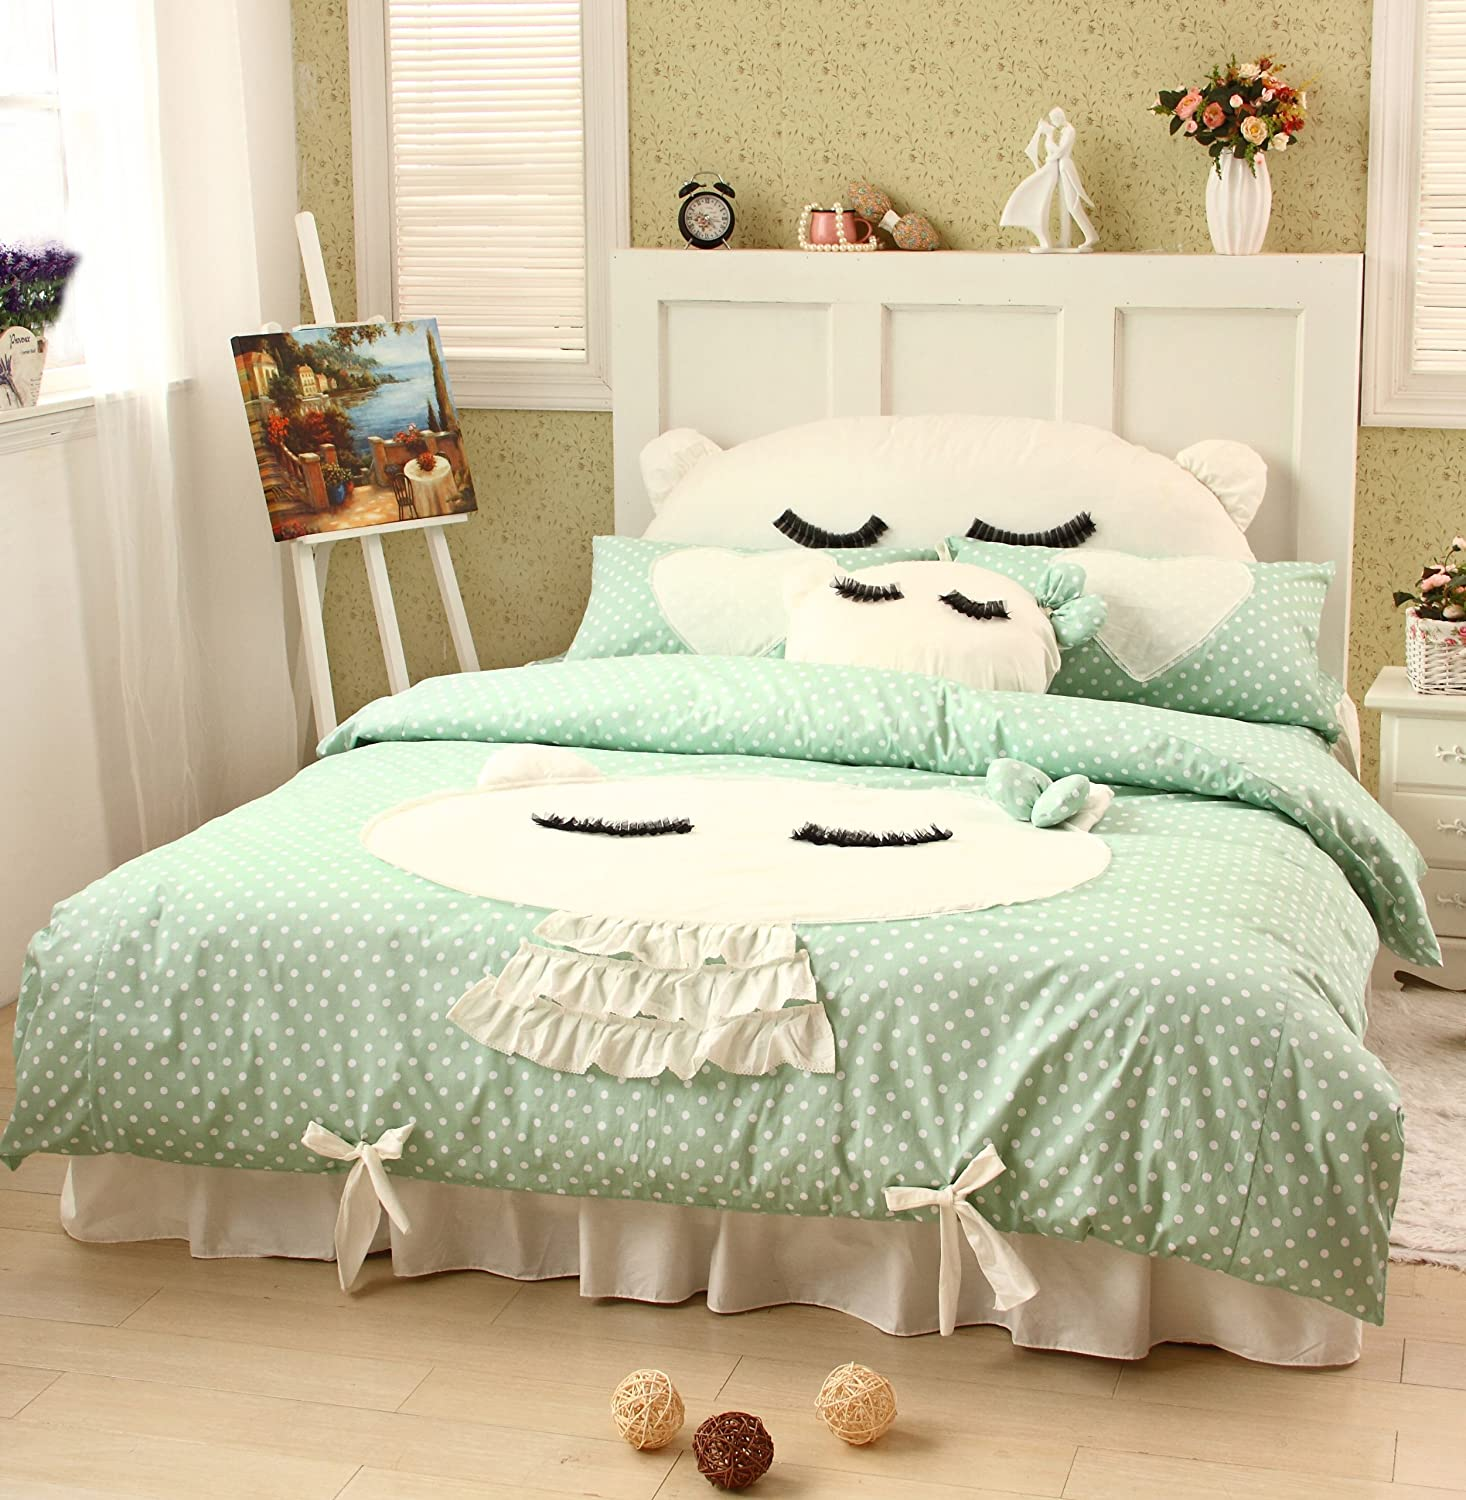 DIAIDI Home Textile,Cute Cat Bedding Set,Girls Polka Dot Bedding Set Queen Twin